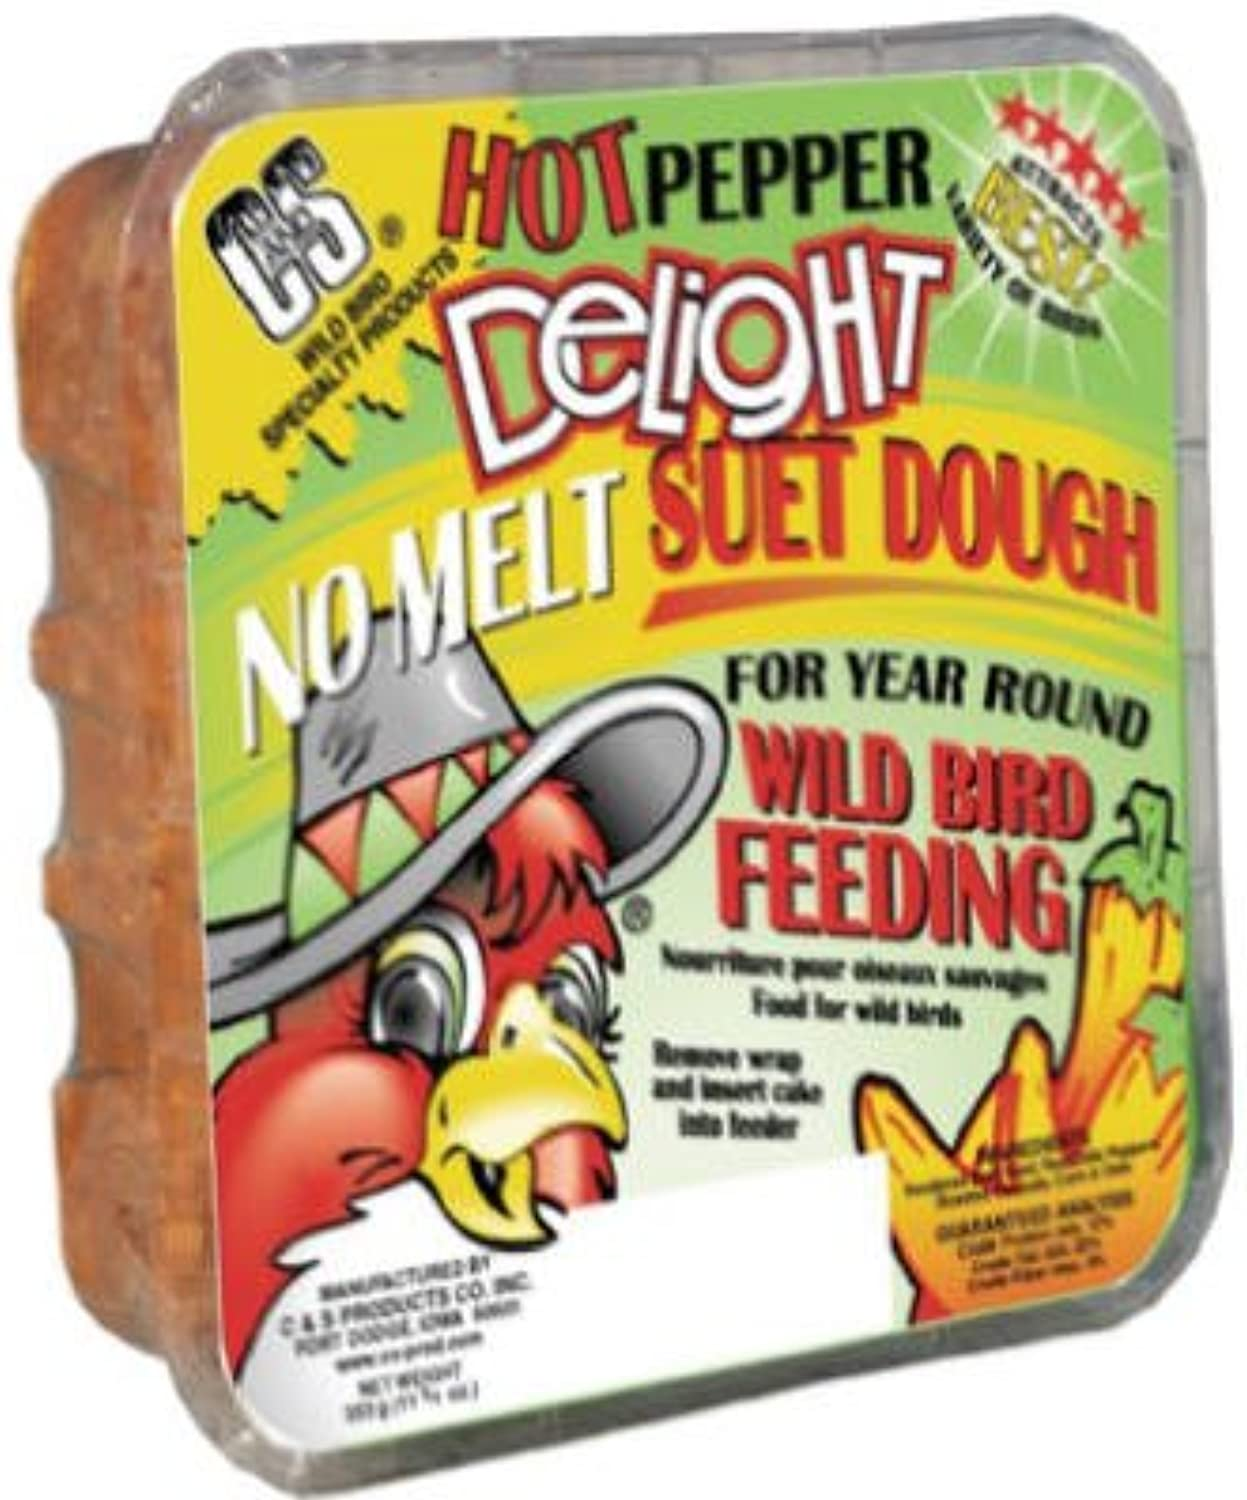 C&S 11.75 oz. Hot Pepper Delight Wild Bird No Melt Suet Dough [Set of 12]